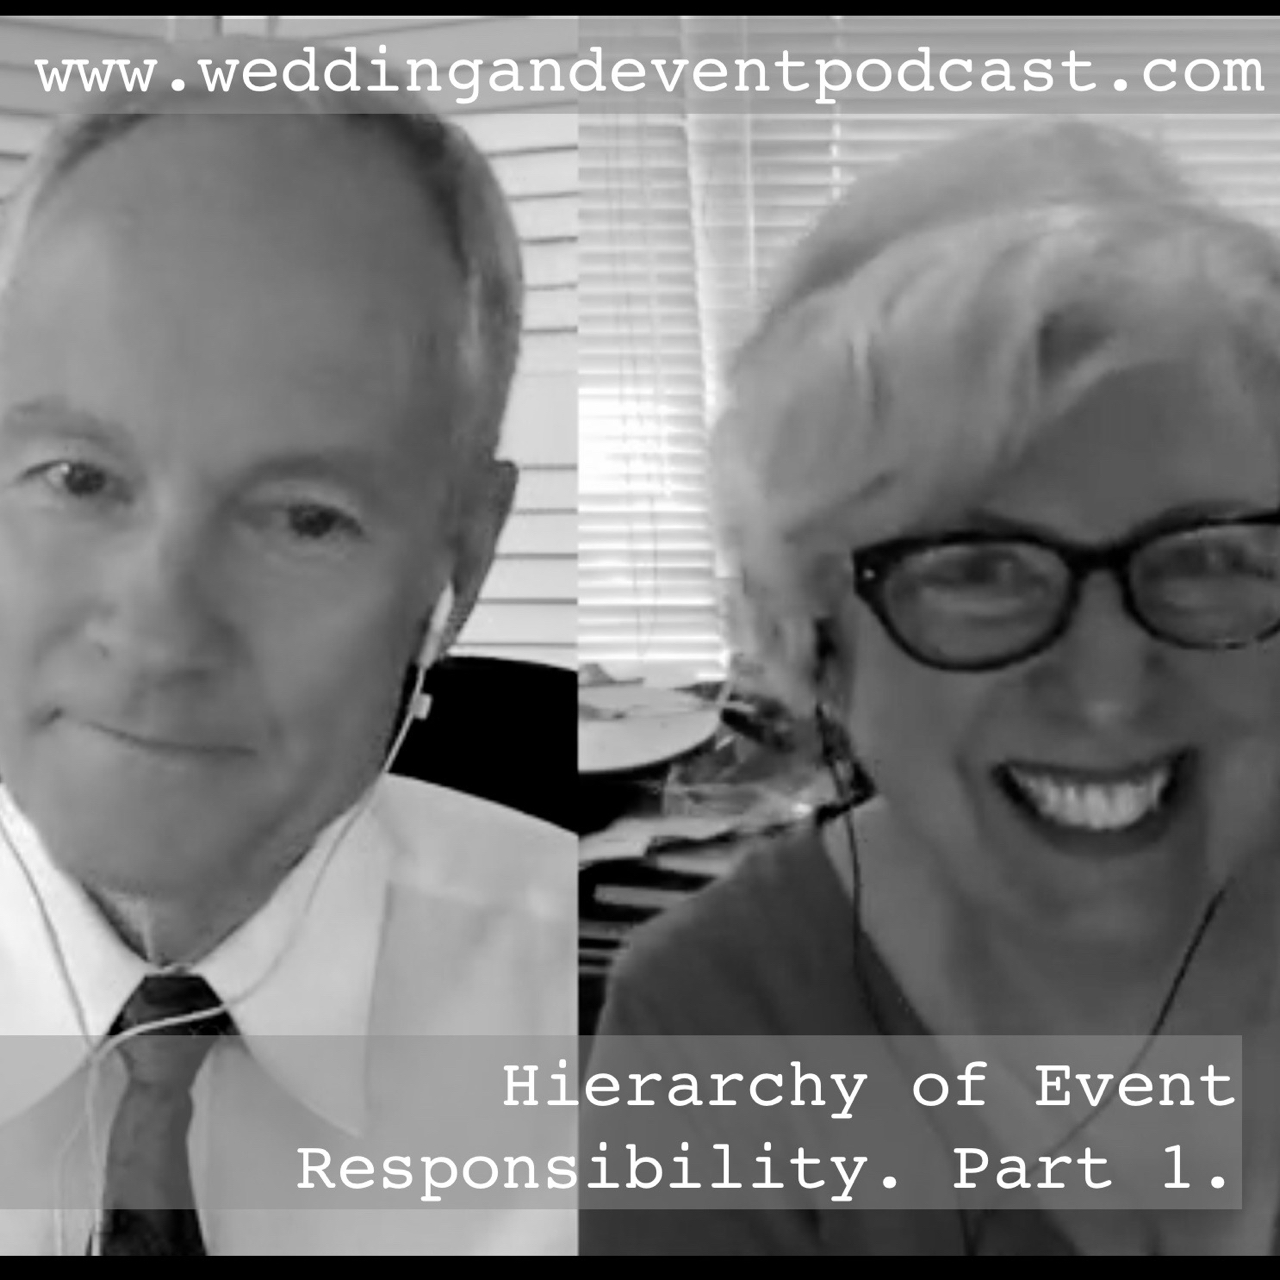 podcastwedding @wedding_and_event_podcast